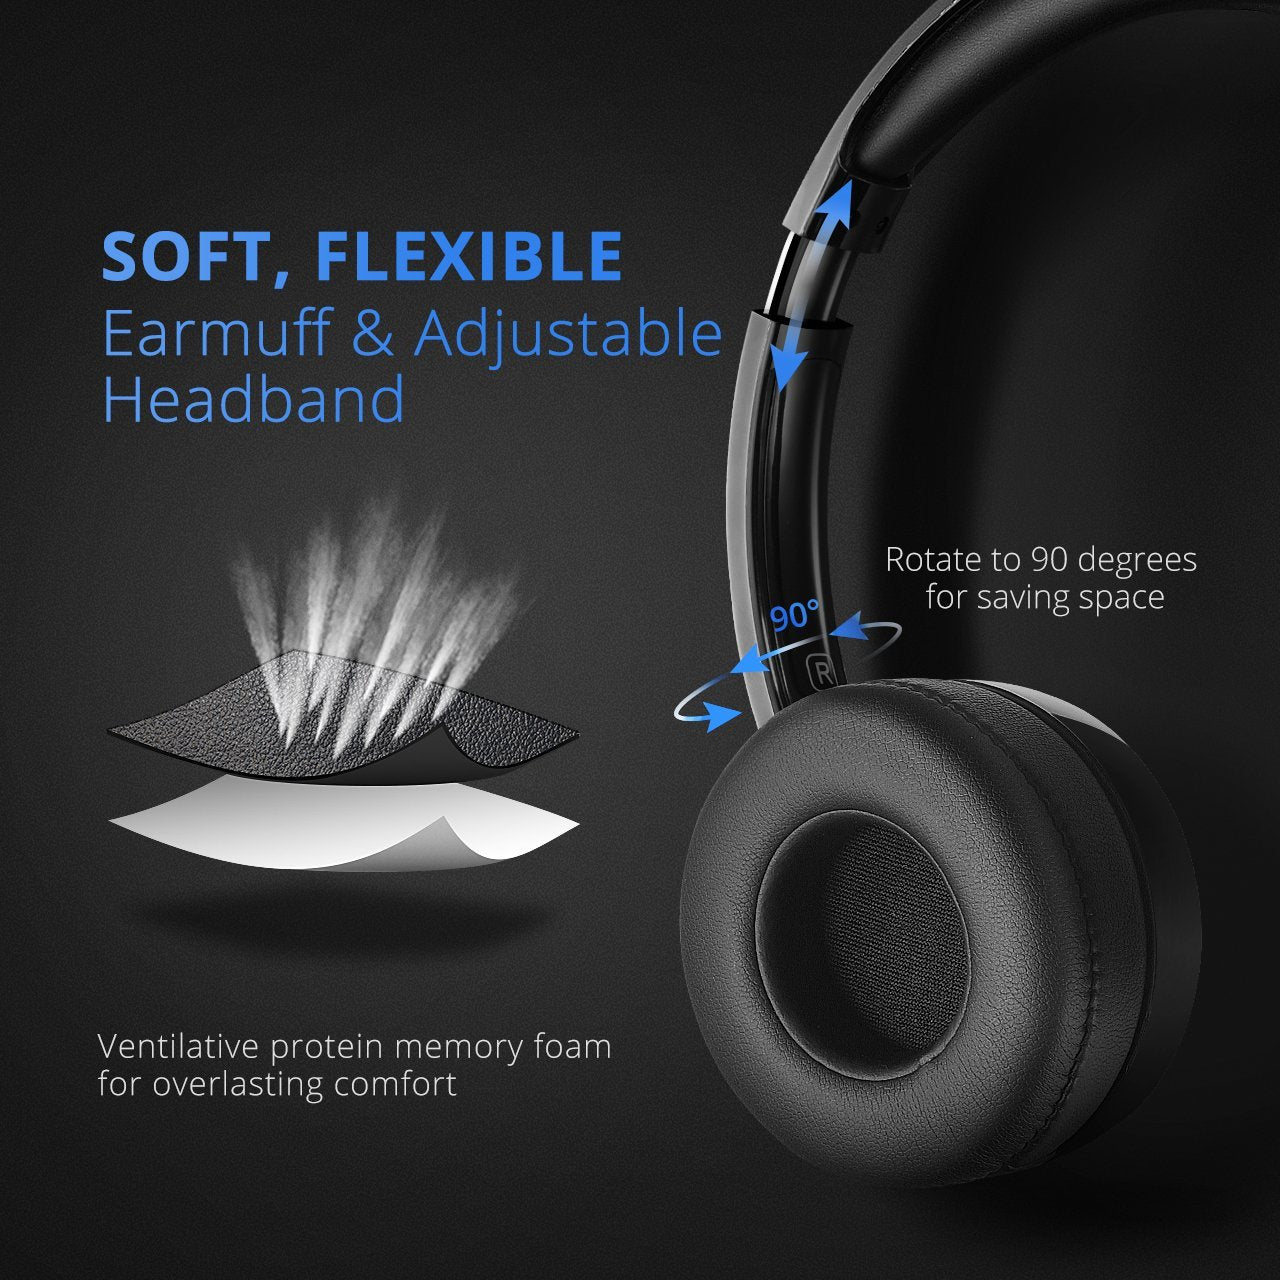 Mpow 071 USB Headset  3.5mm Computer Headset with Microphone Noise  Cancelling  8e6ea64214